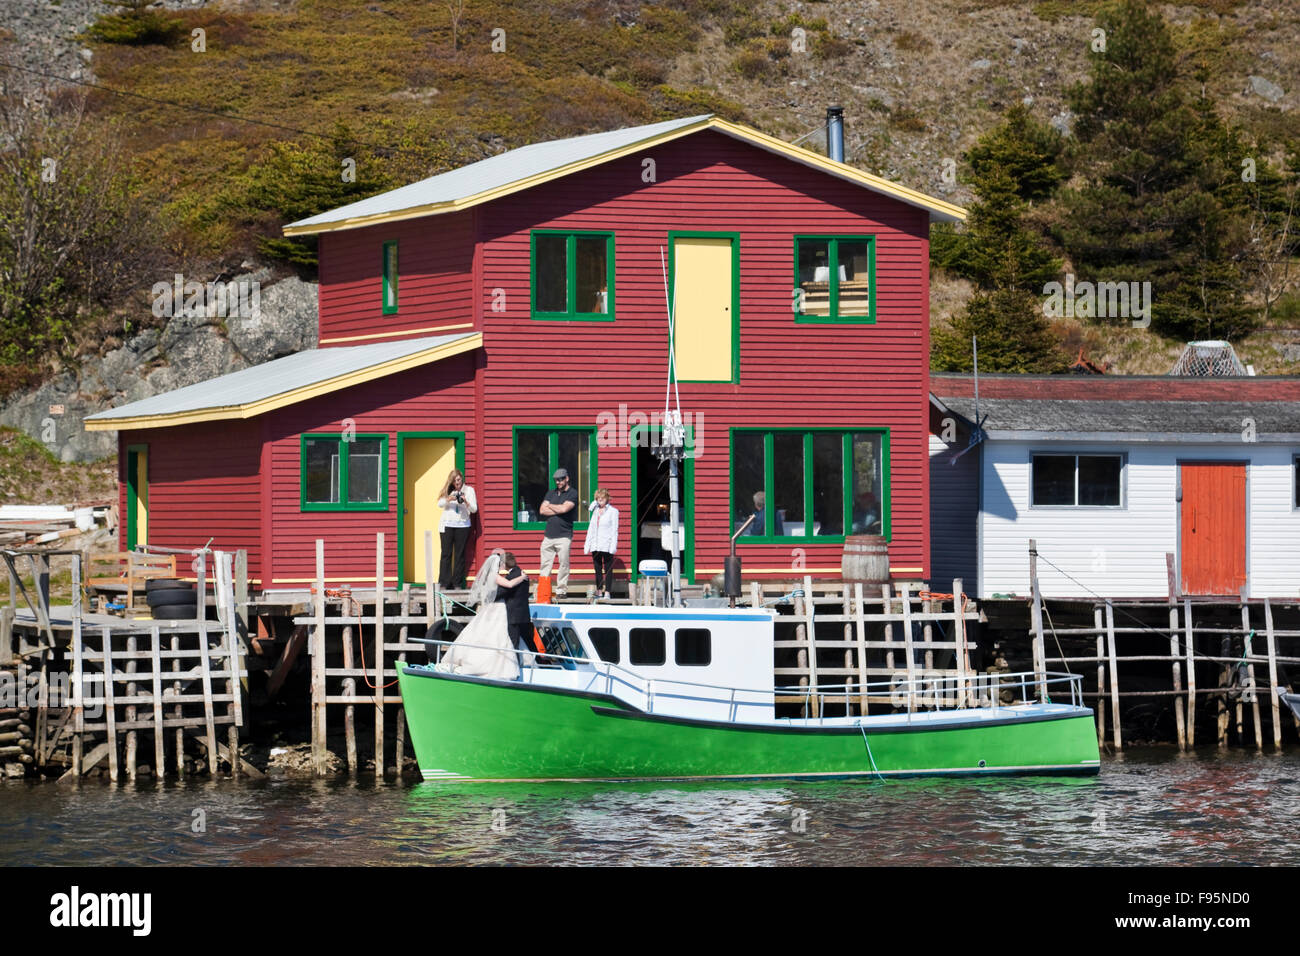 Newlyweds posing for photos on a bightly coloured fishing boat moored next to a fishing shed in Quidi Vidi, Newfoundland, - Stock Image